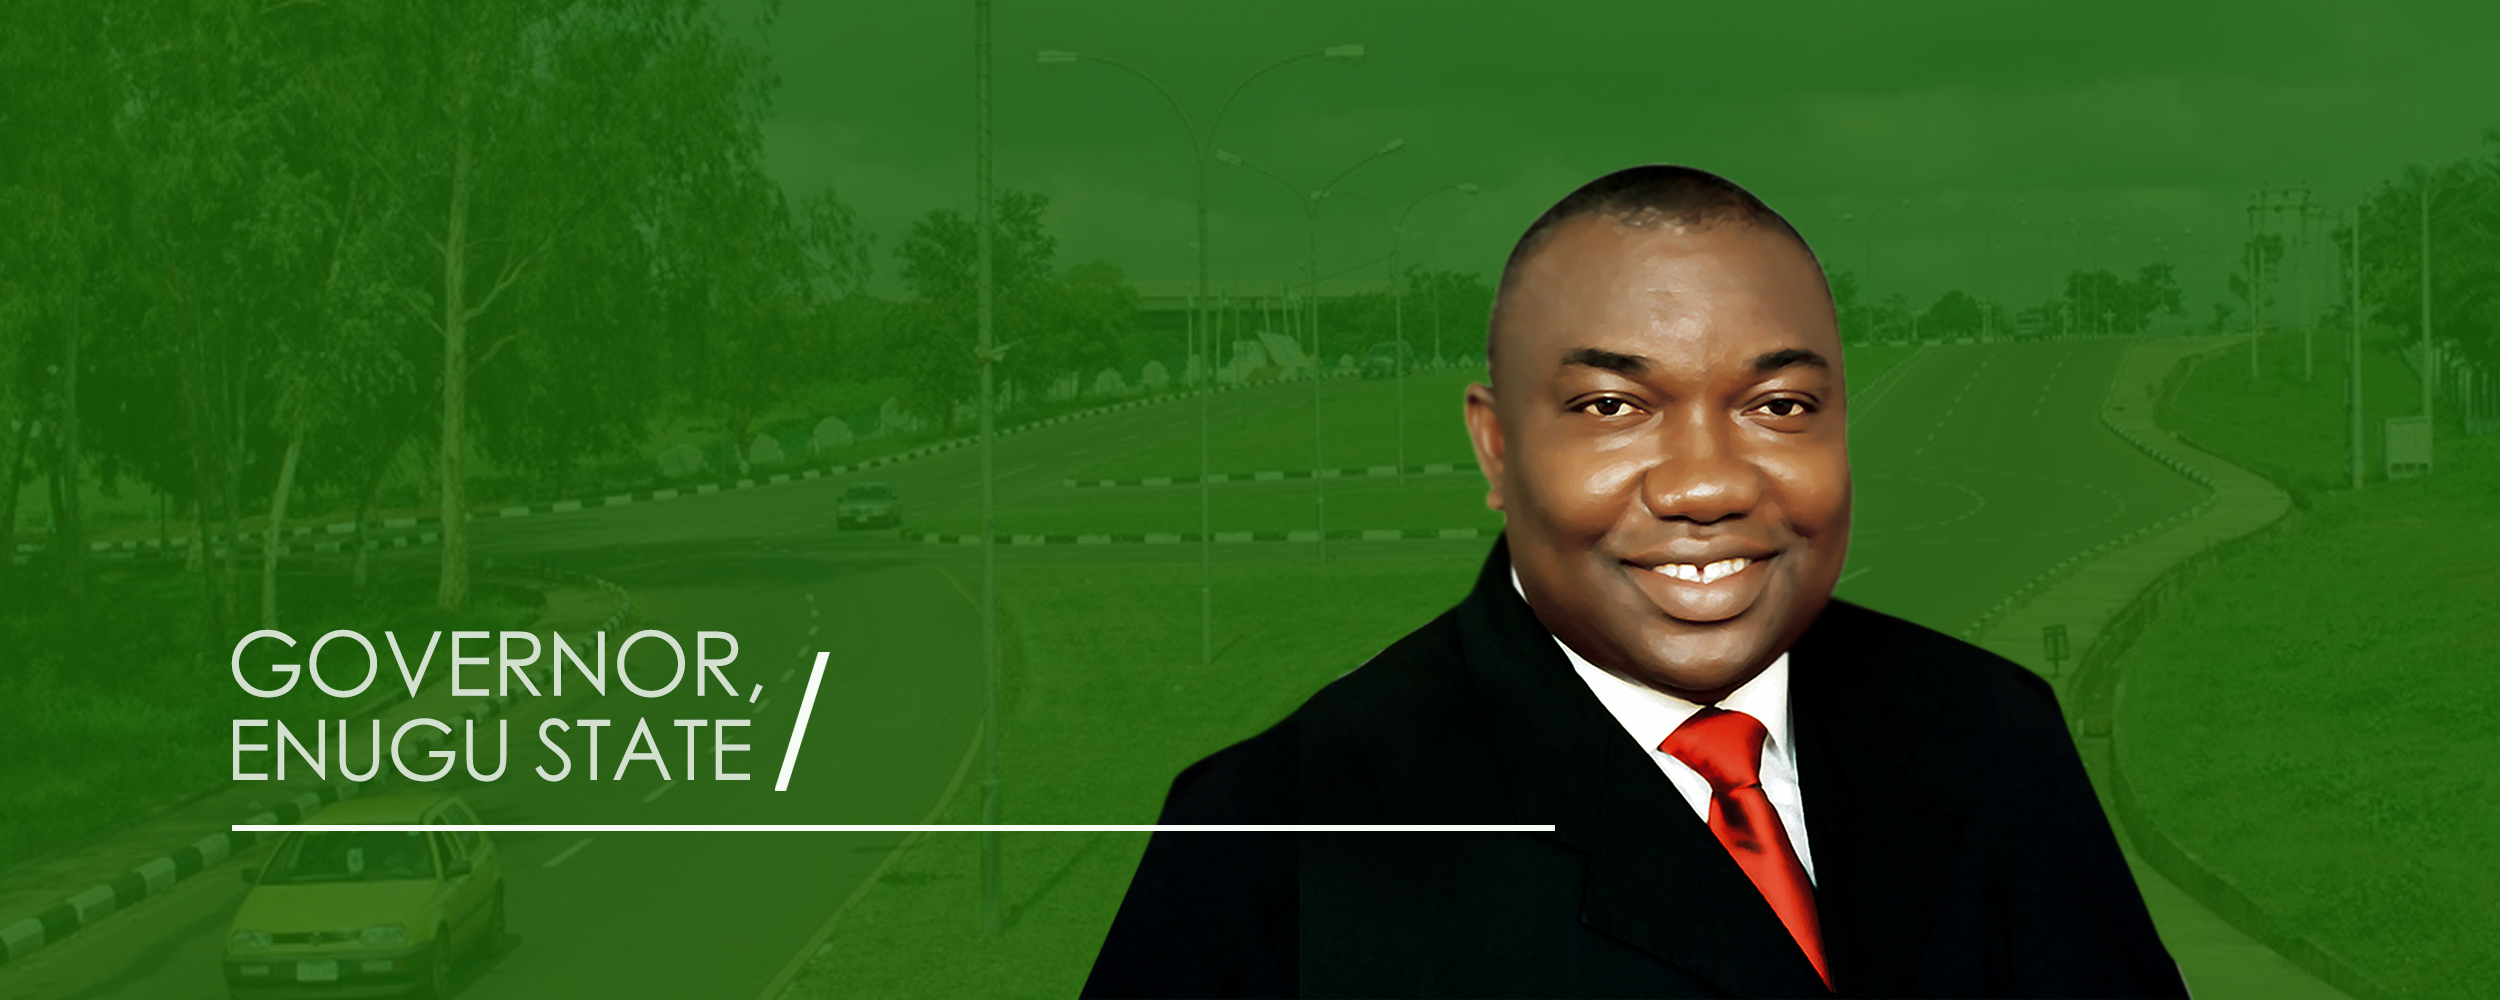 Gov Ifeanyi Ugwuanyi Of Enugu State On Wednesday Inaugurated Three New Covid 19 Isolation And Treatment Centres In The State. The Isolation Centres Are Located At The Ultra Modern Diagnostic Centre